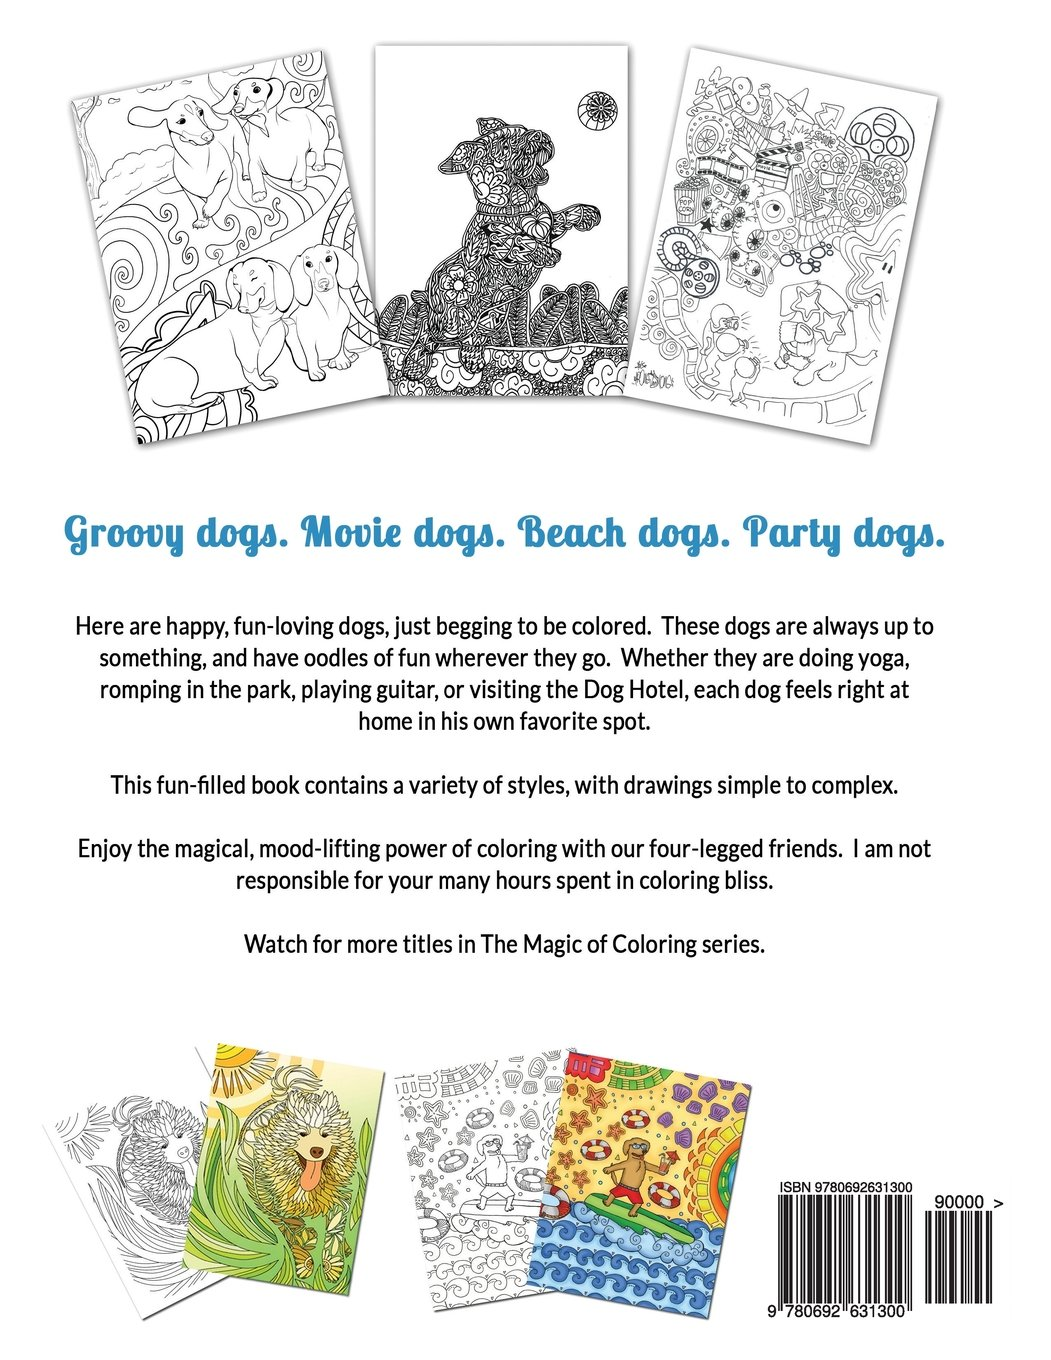 A fun magic coloring book amazon - Amazon Com Dogs Wanna Have Fun Art Pages To Color And Enjoy Adult Coloring Book The Magic Of Coloring Volume 1 9780692631300 Emilie Bilokur Books